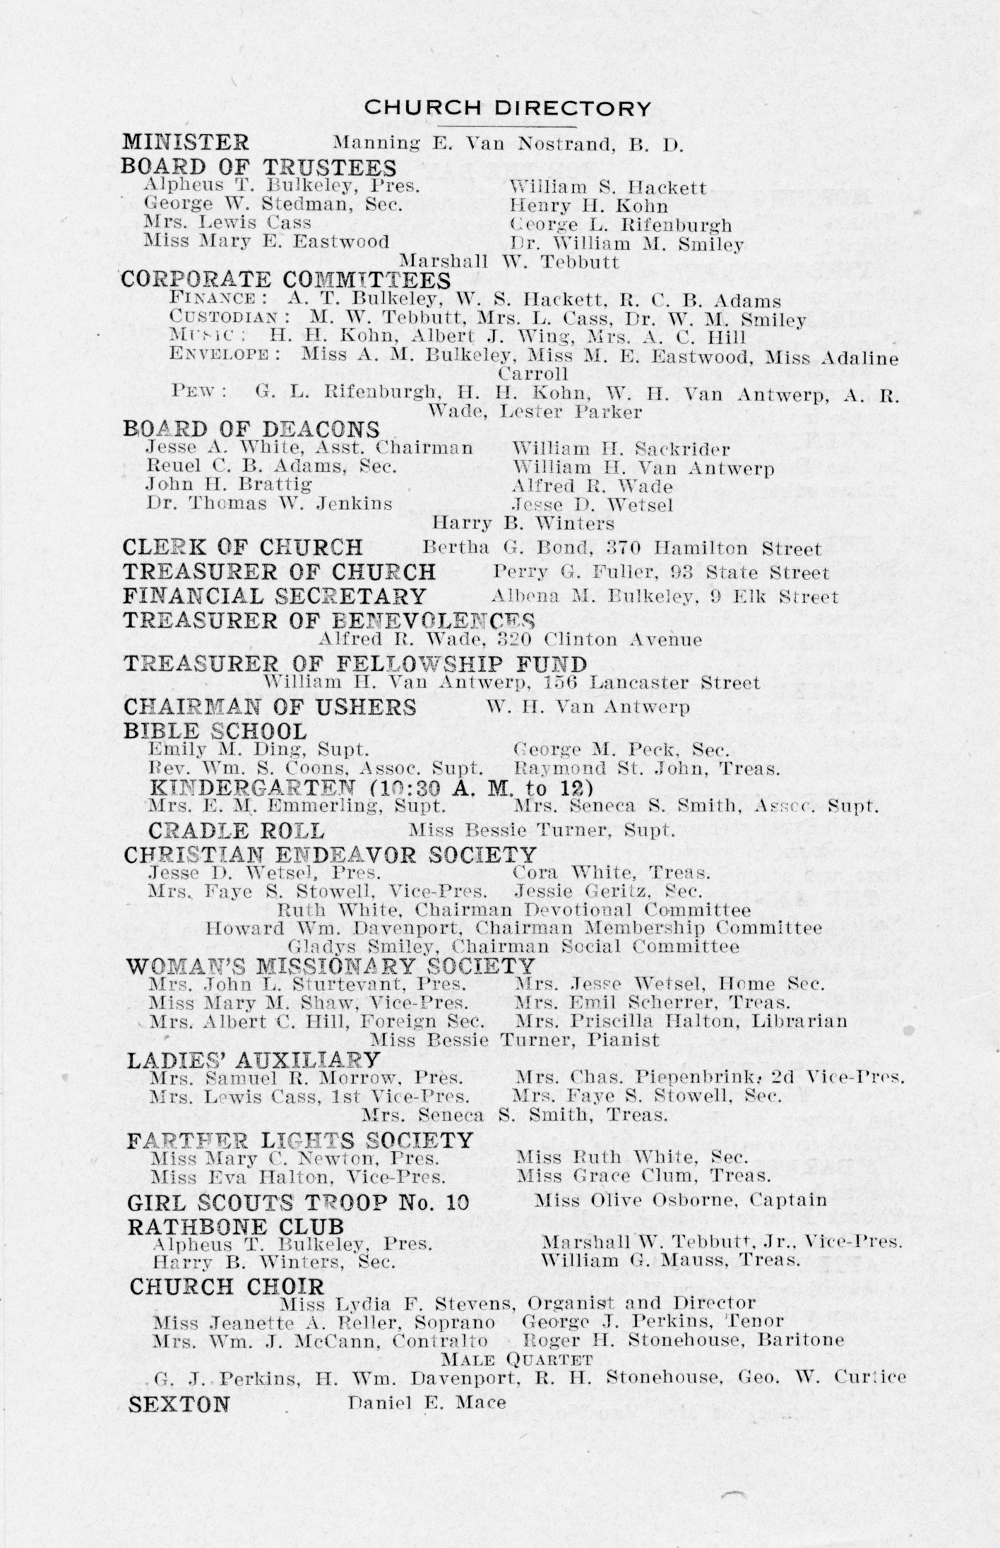 Church Bulletin Nov 19, 1919 page 4